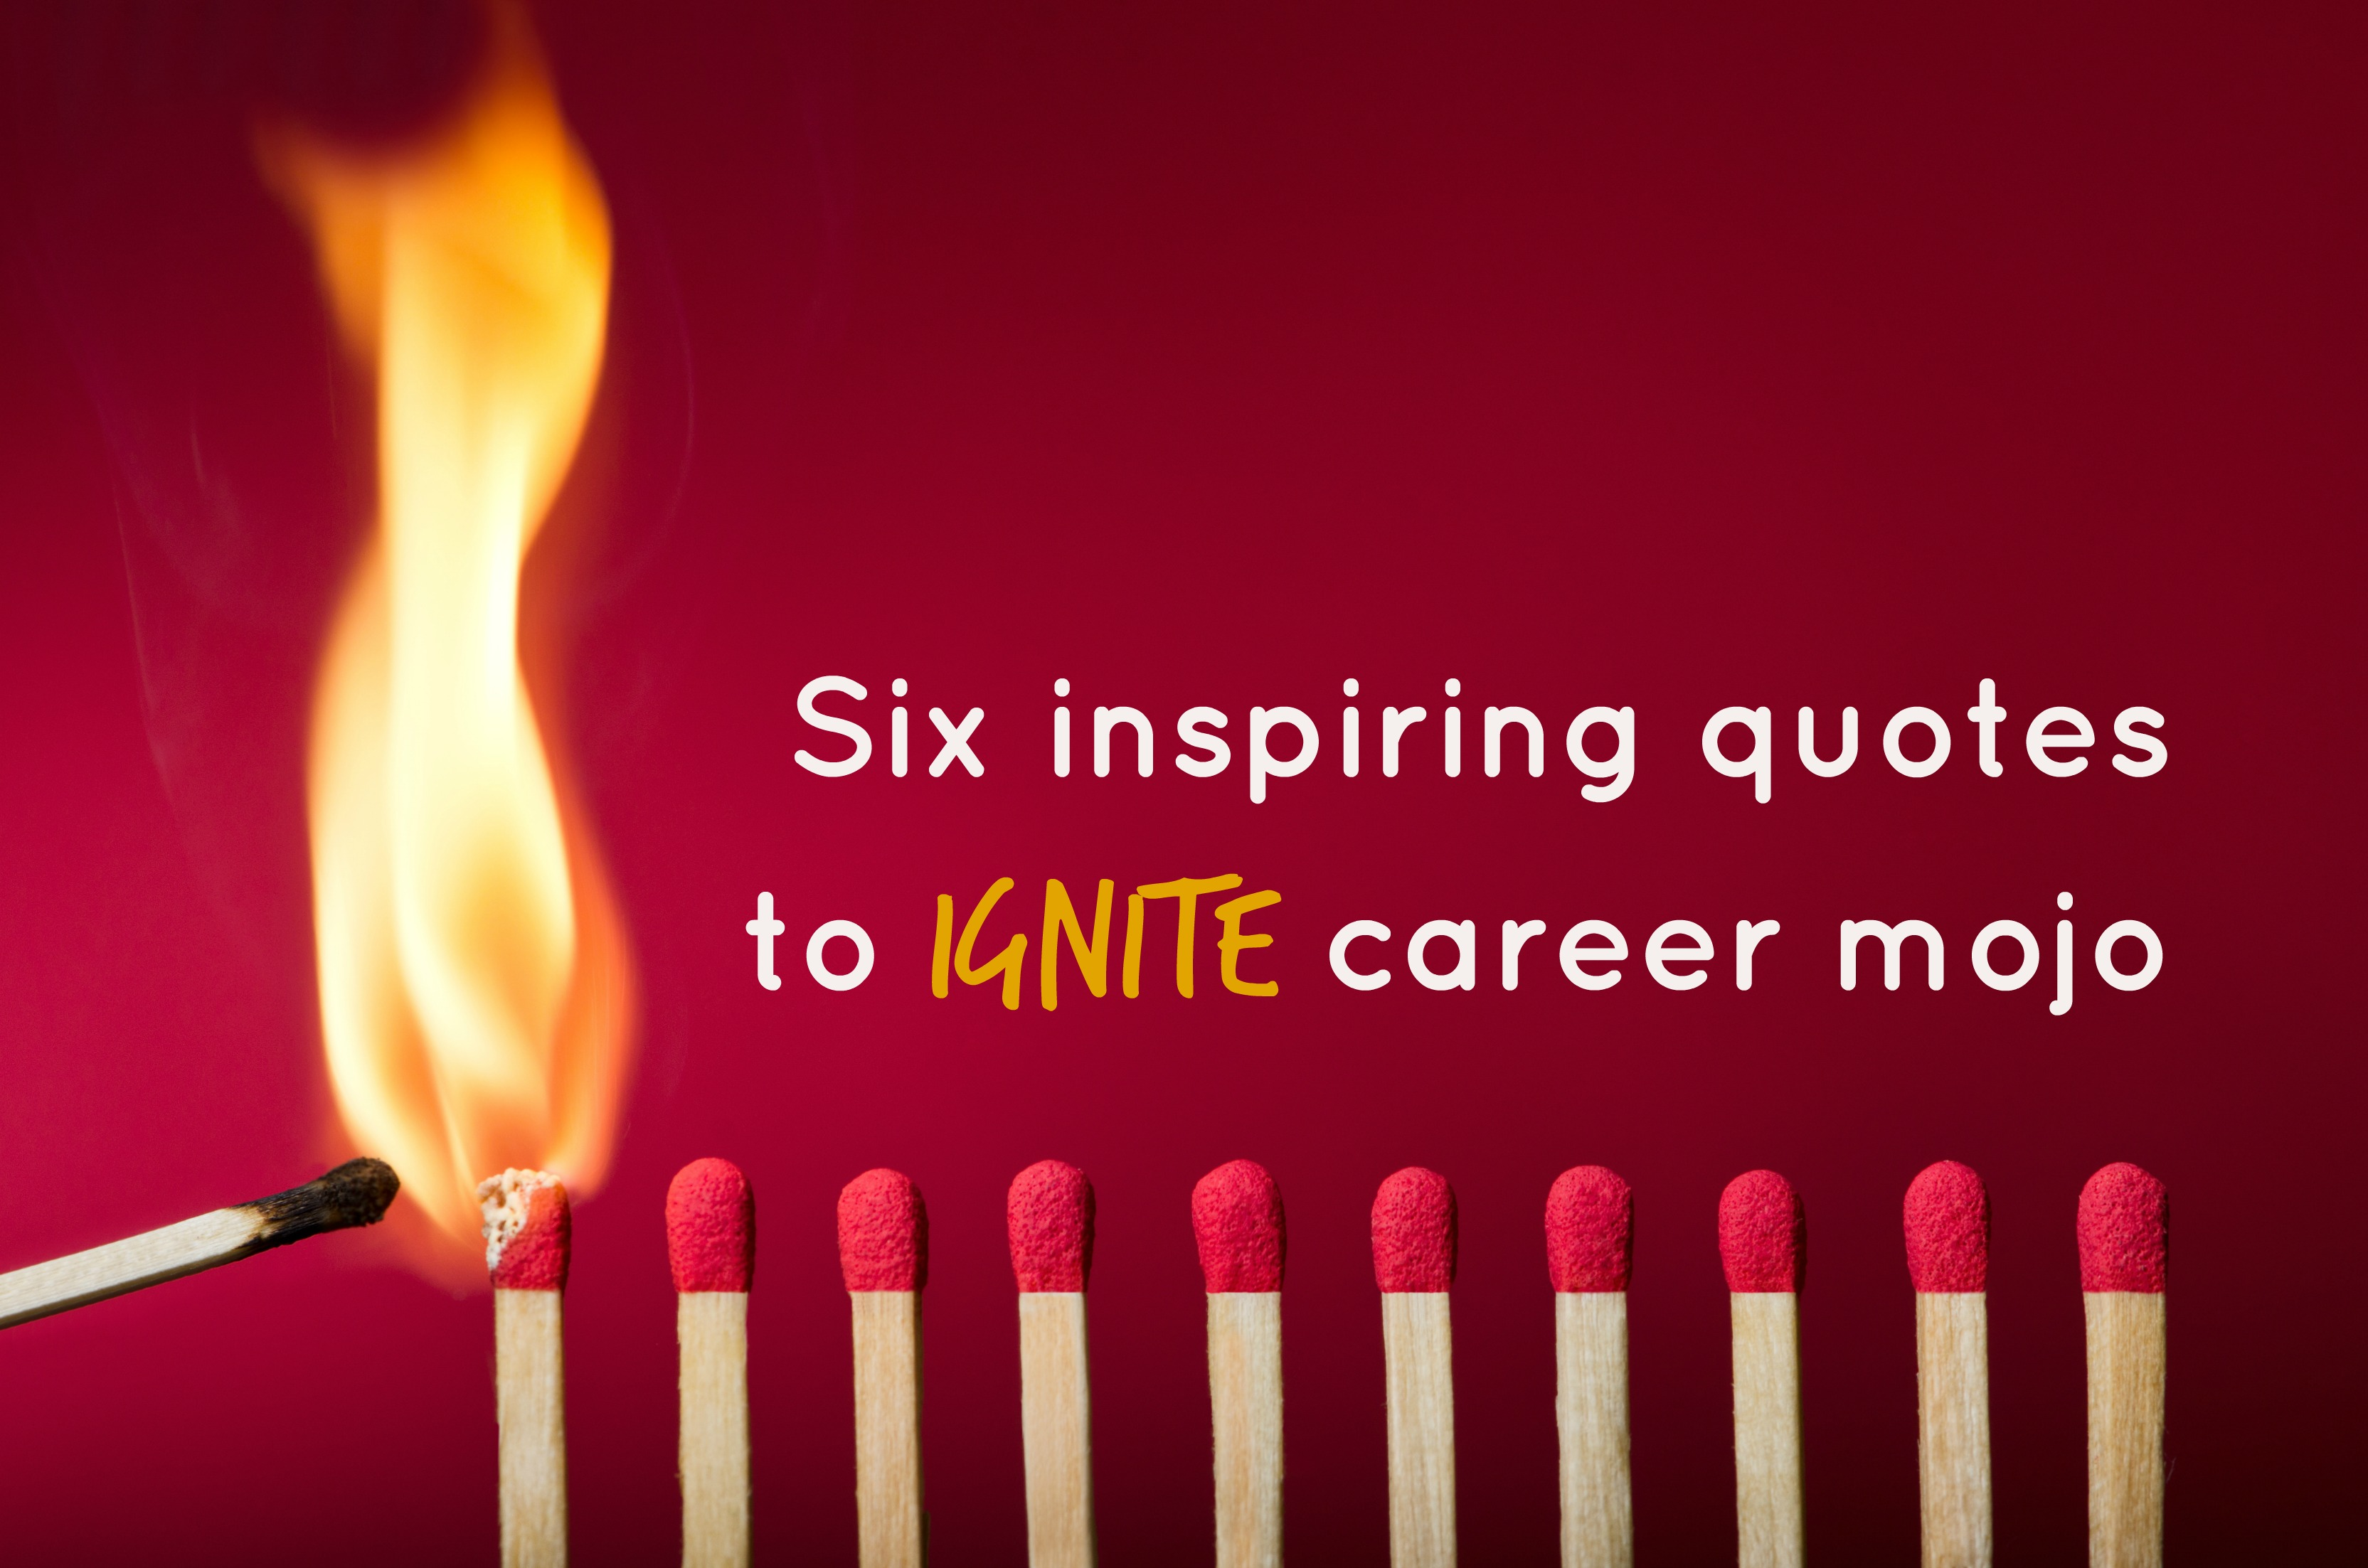 six inspiring quotes to ignite career mojo